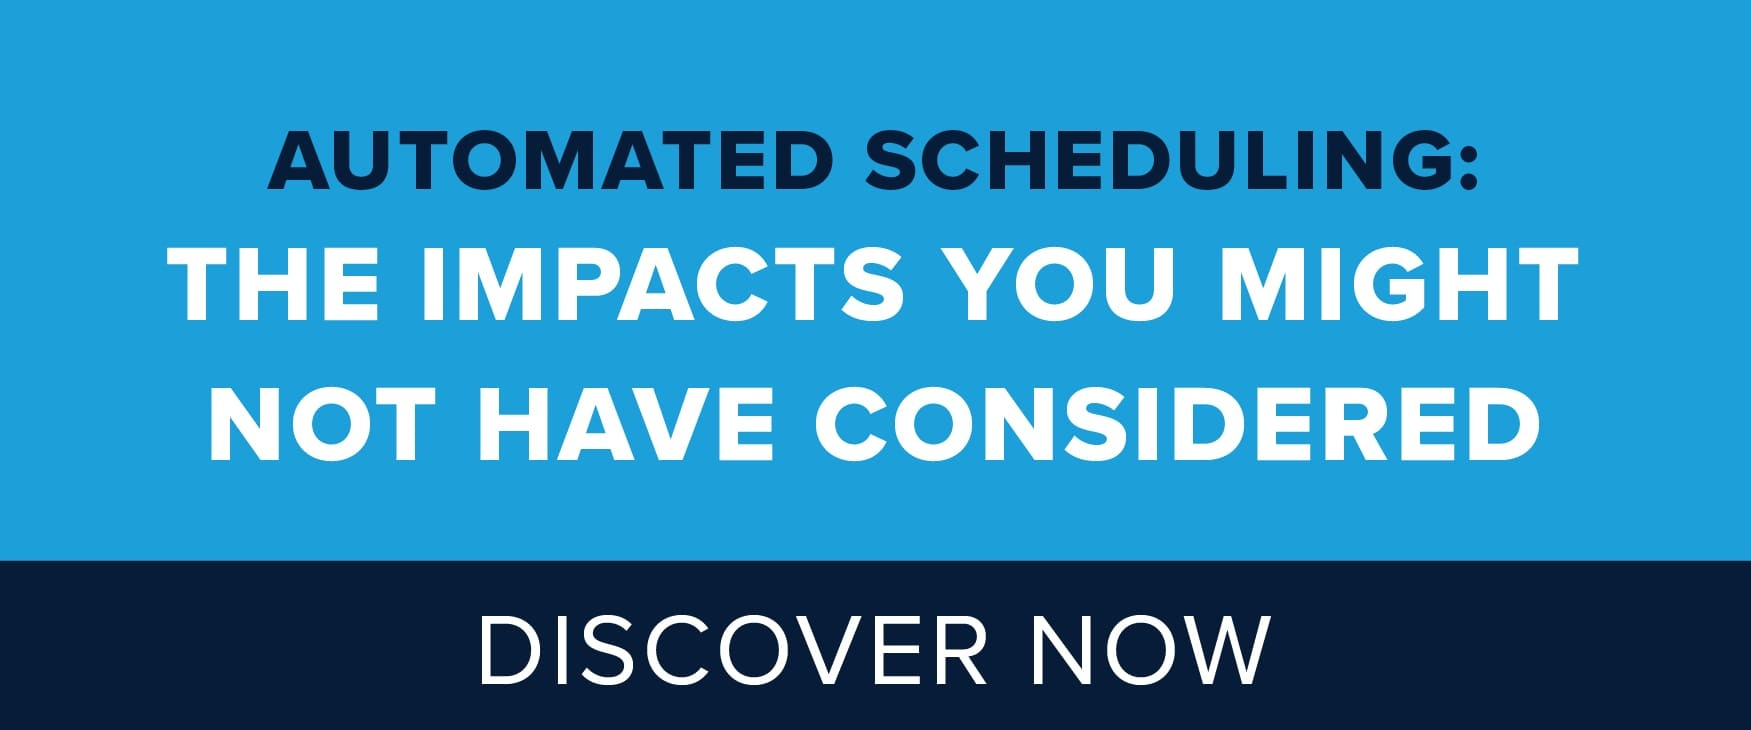 Automated Scheduling: The Impacts You Might Not Have Considered